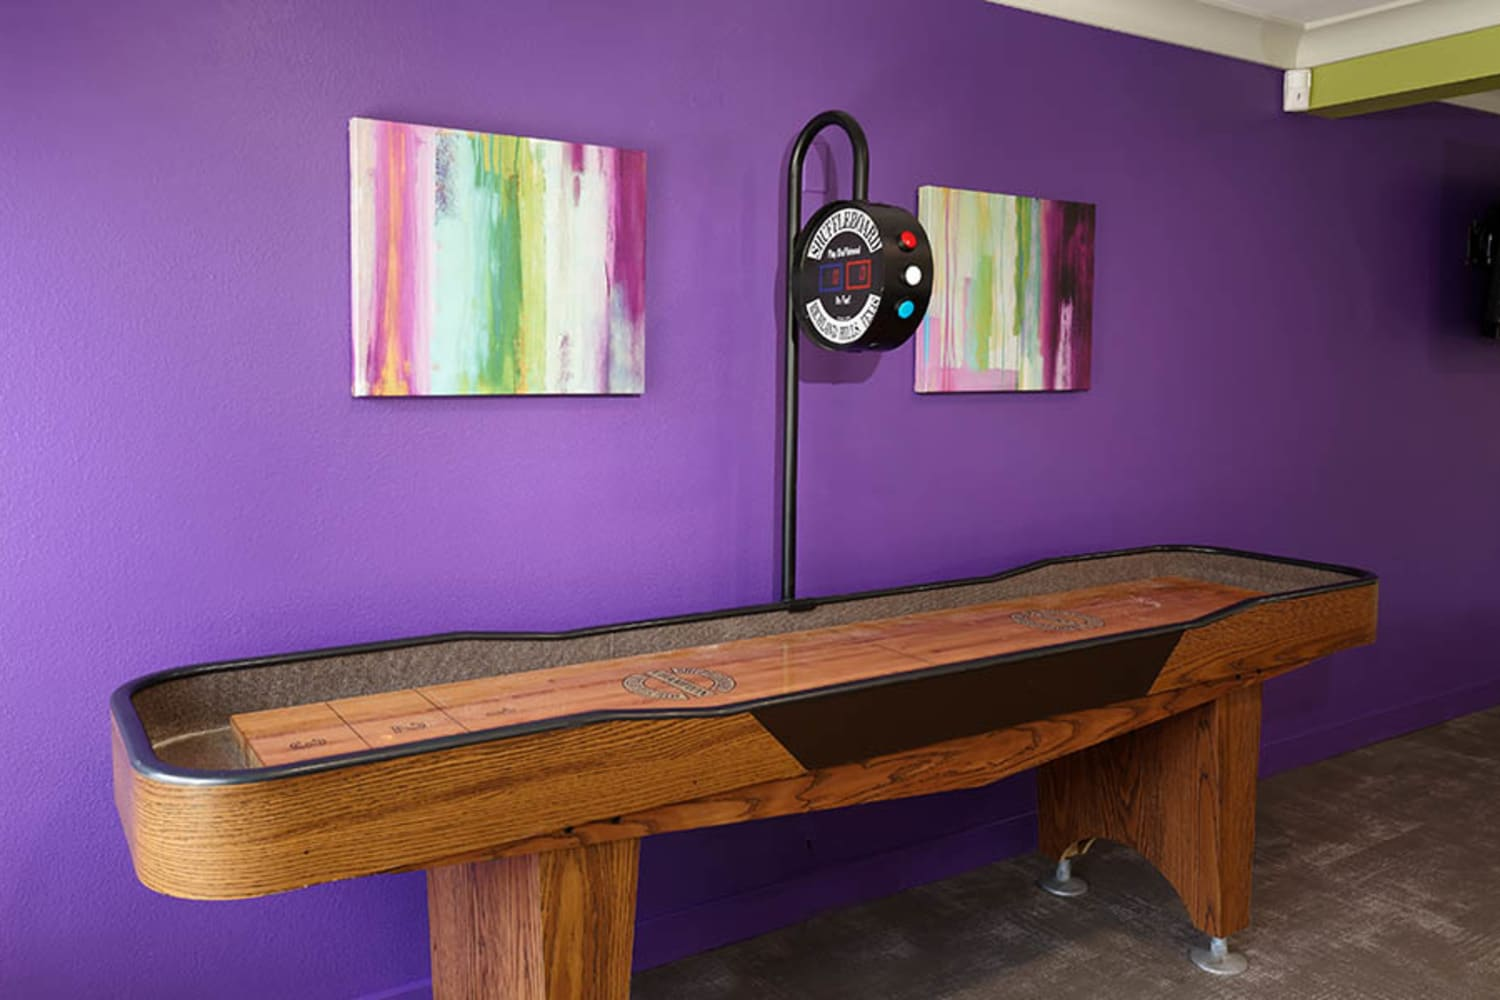 UCA Apartment Homes in Fullerton, California, offer a shuffleboard table